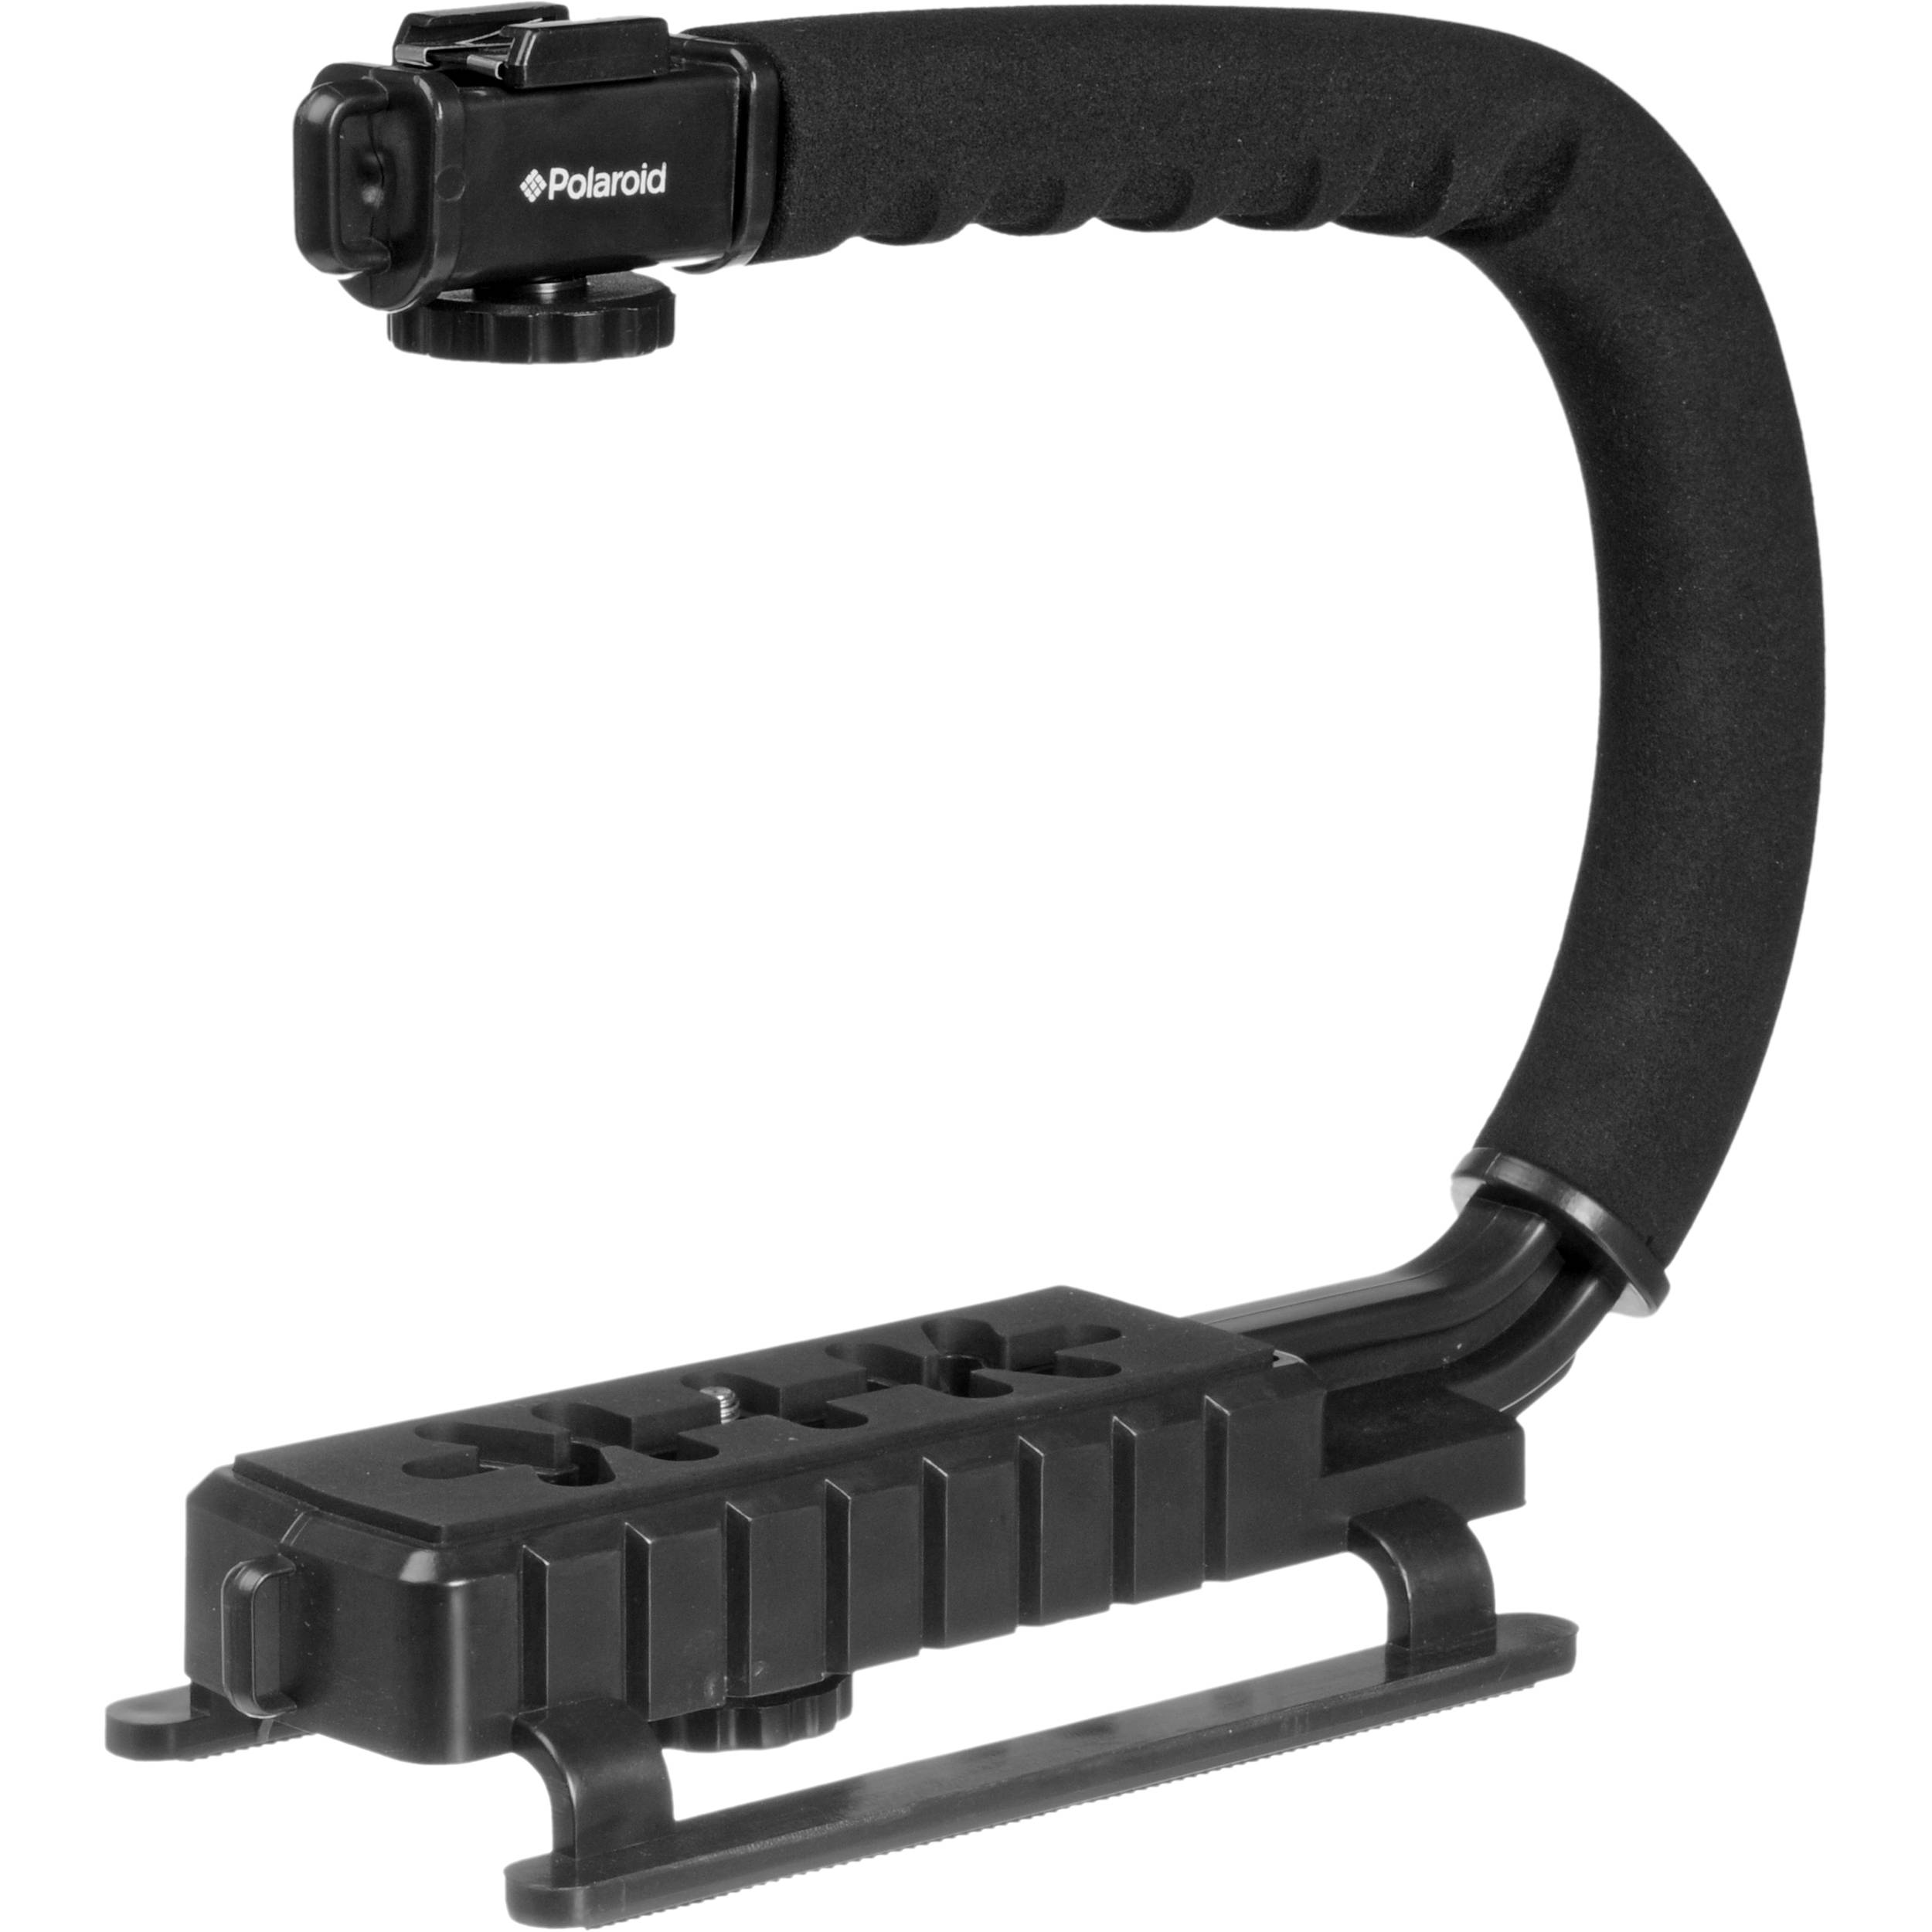 Polaroid Sure-Grip Camera Stabilizing Handle Mount PLSTA B&H